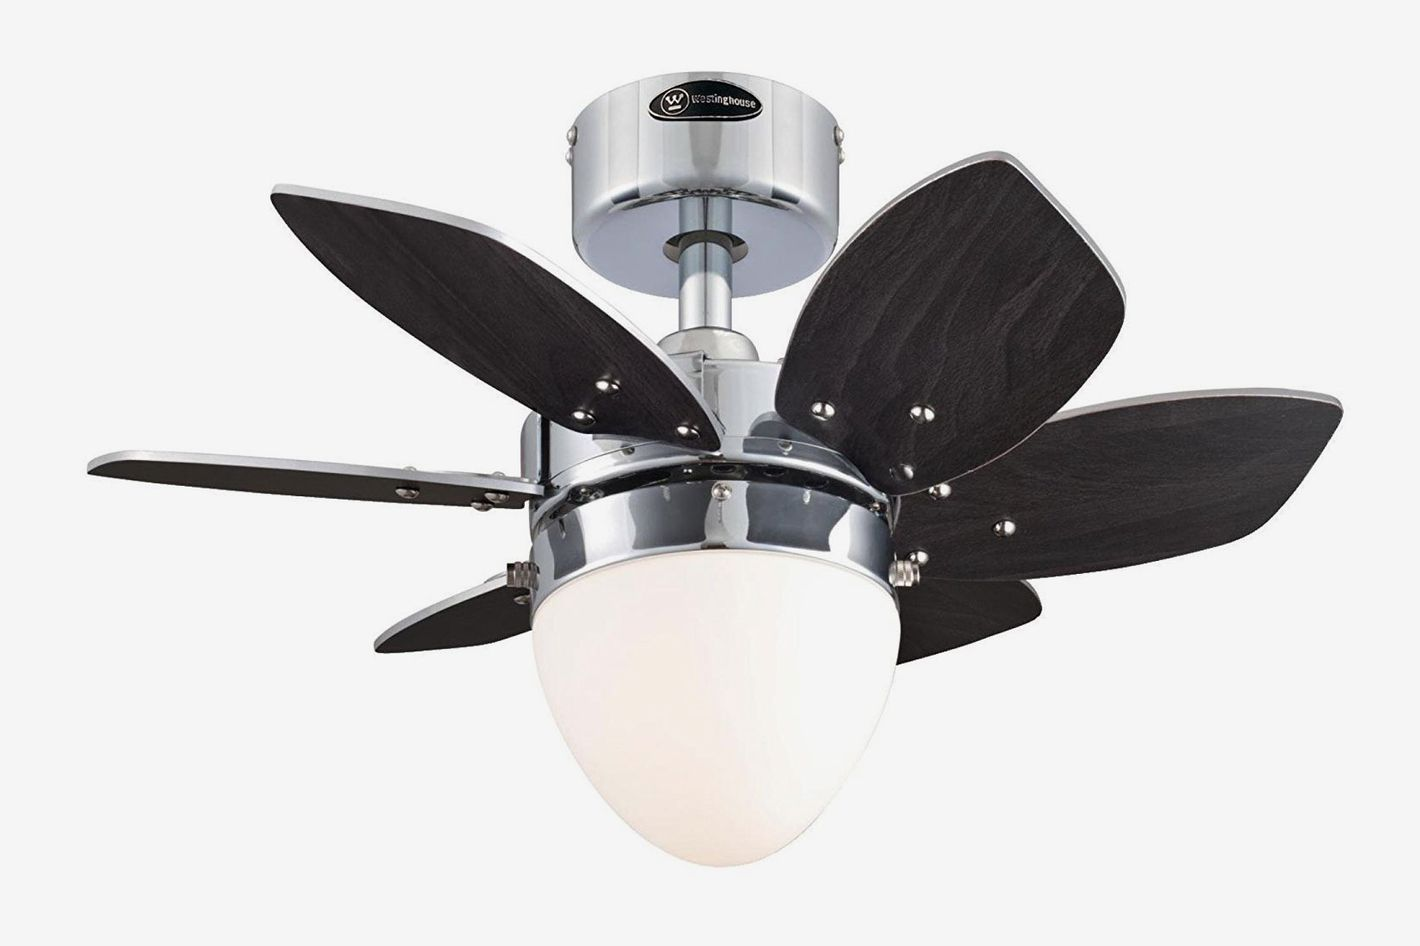 The 9 Best Ceiling Fans on Amazon 2018